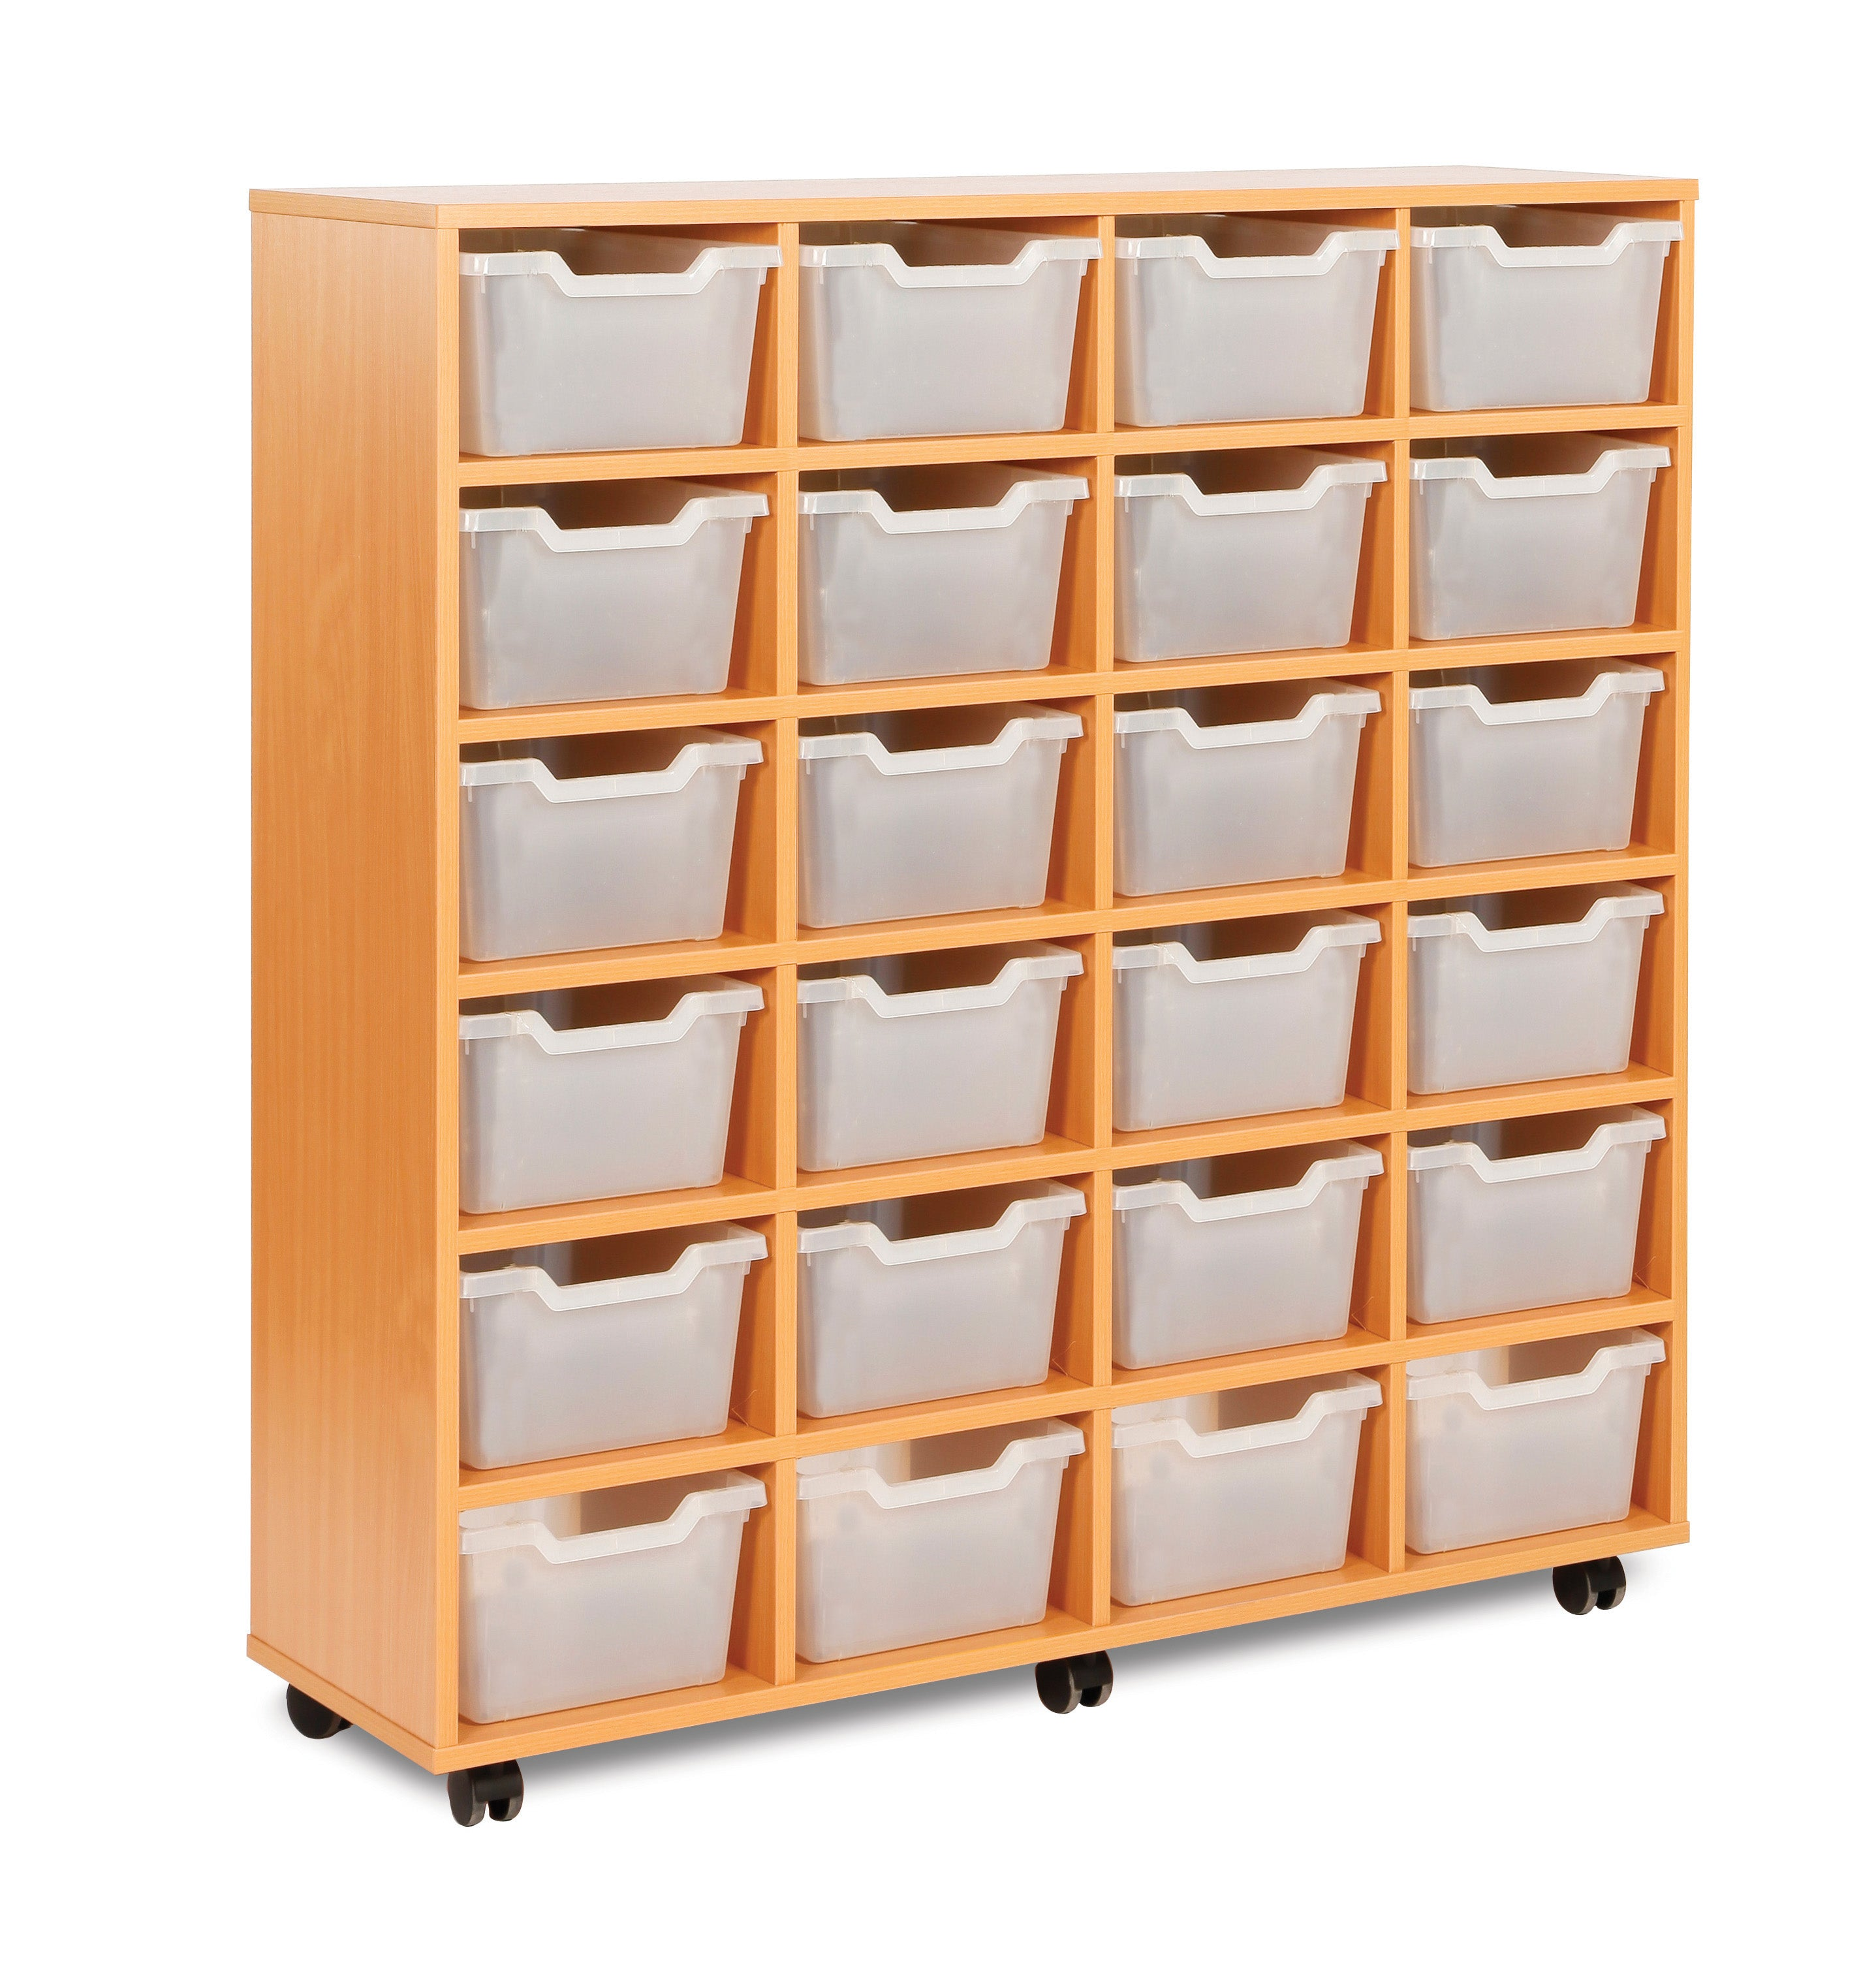 24 Cubby Tray Unit